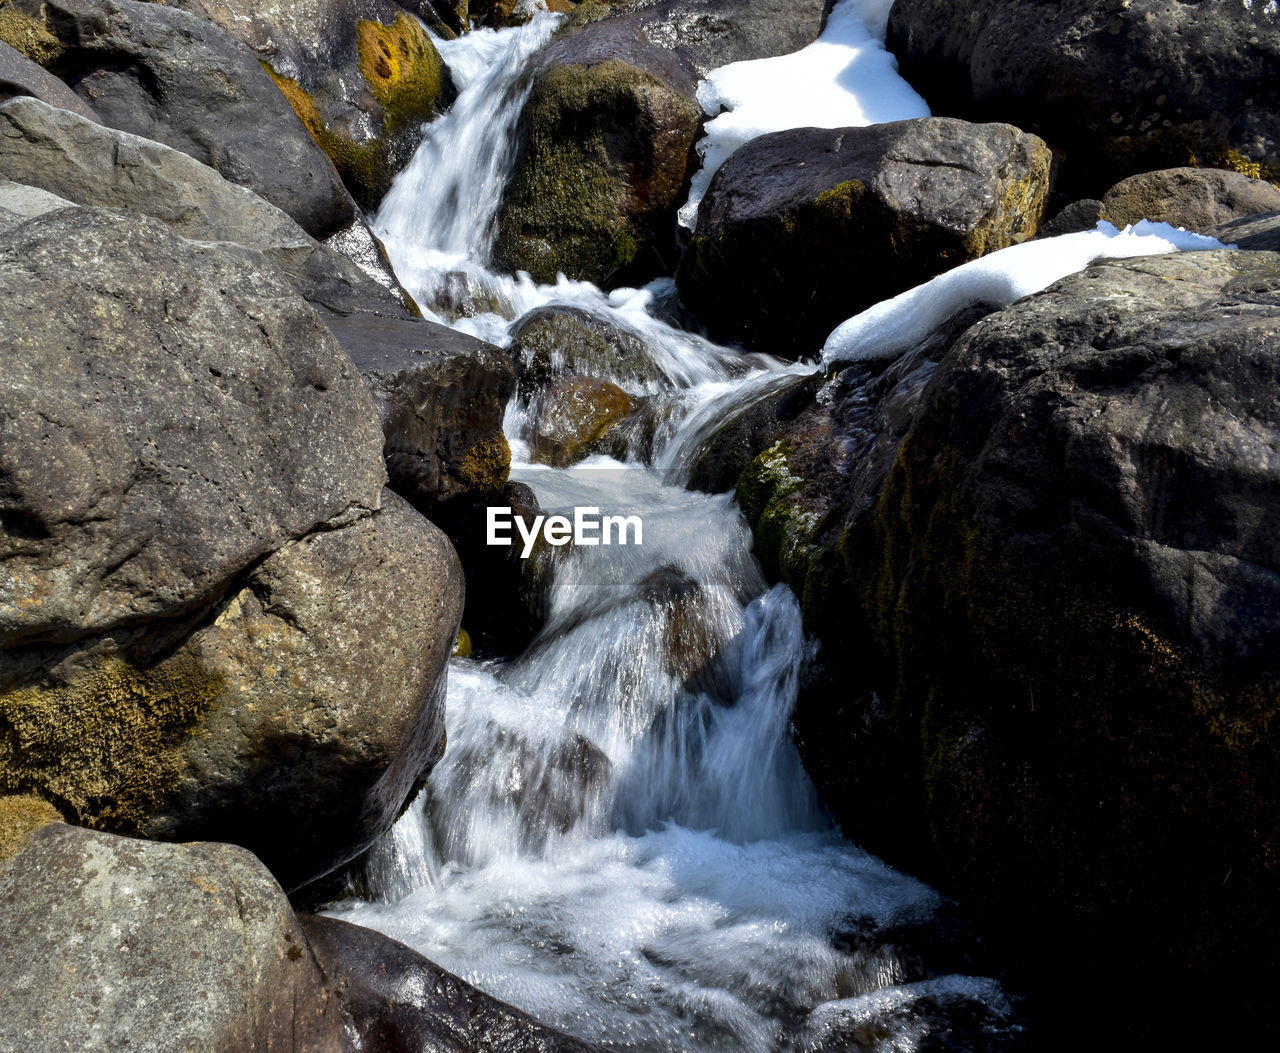 rock, water, rock - object, solid, motion, beauty in nature, flowing water, scenics - nature, long exposure, waterfall, nature, blurred motion, no people, flowing, day, land, sea, sport, forest, outdoors, stream - flowing water, power in nature, purity, running water